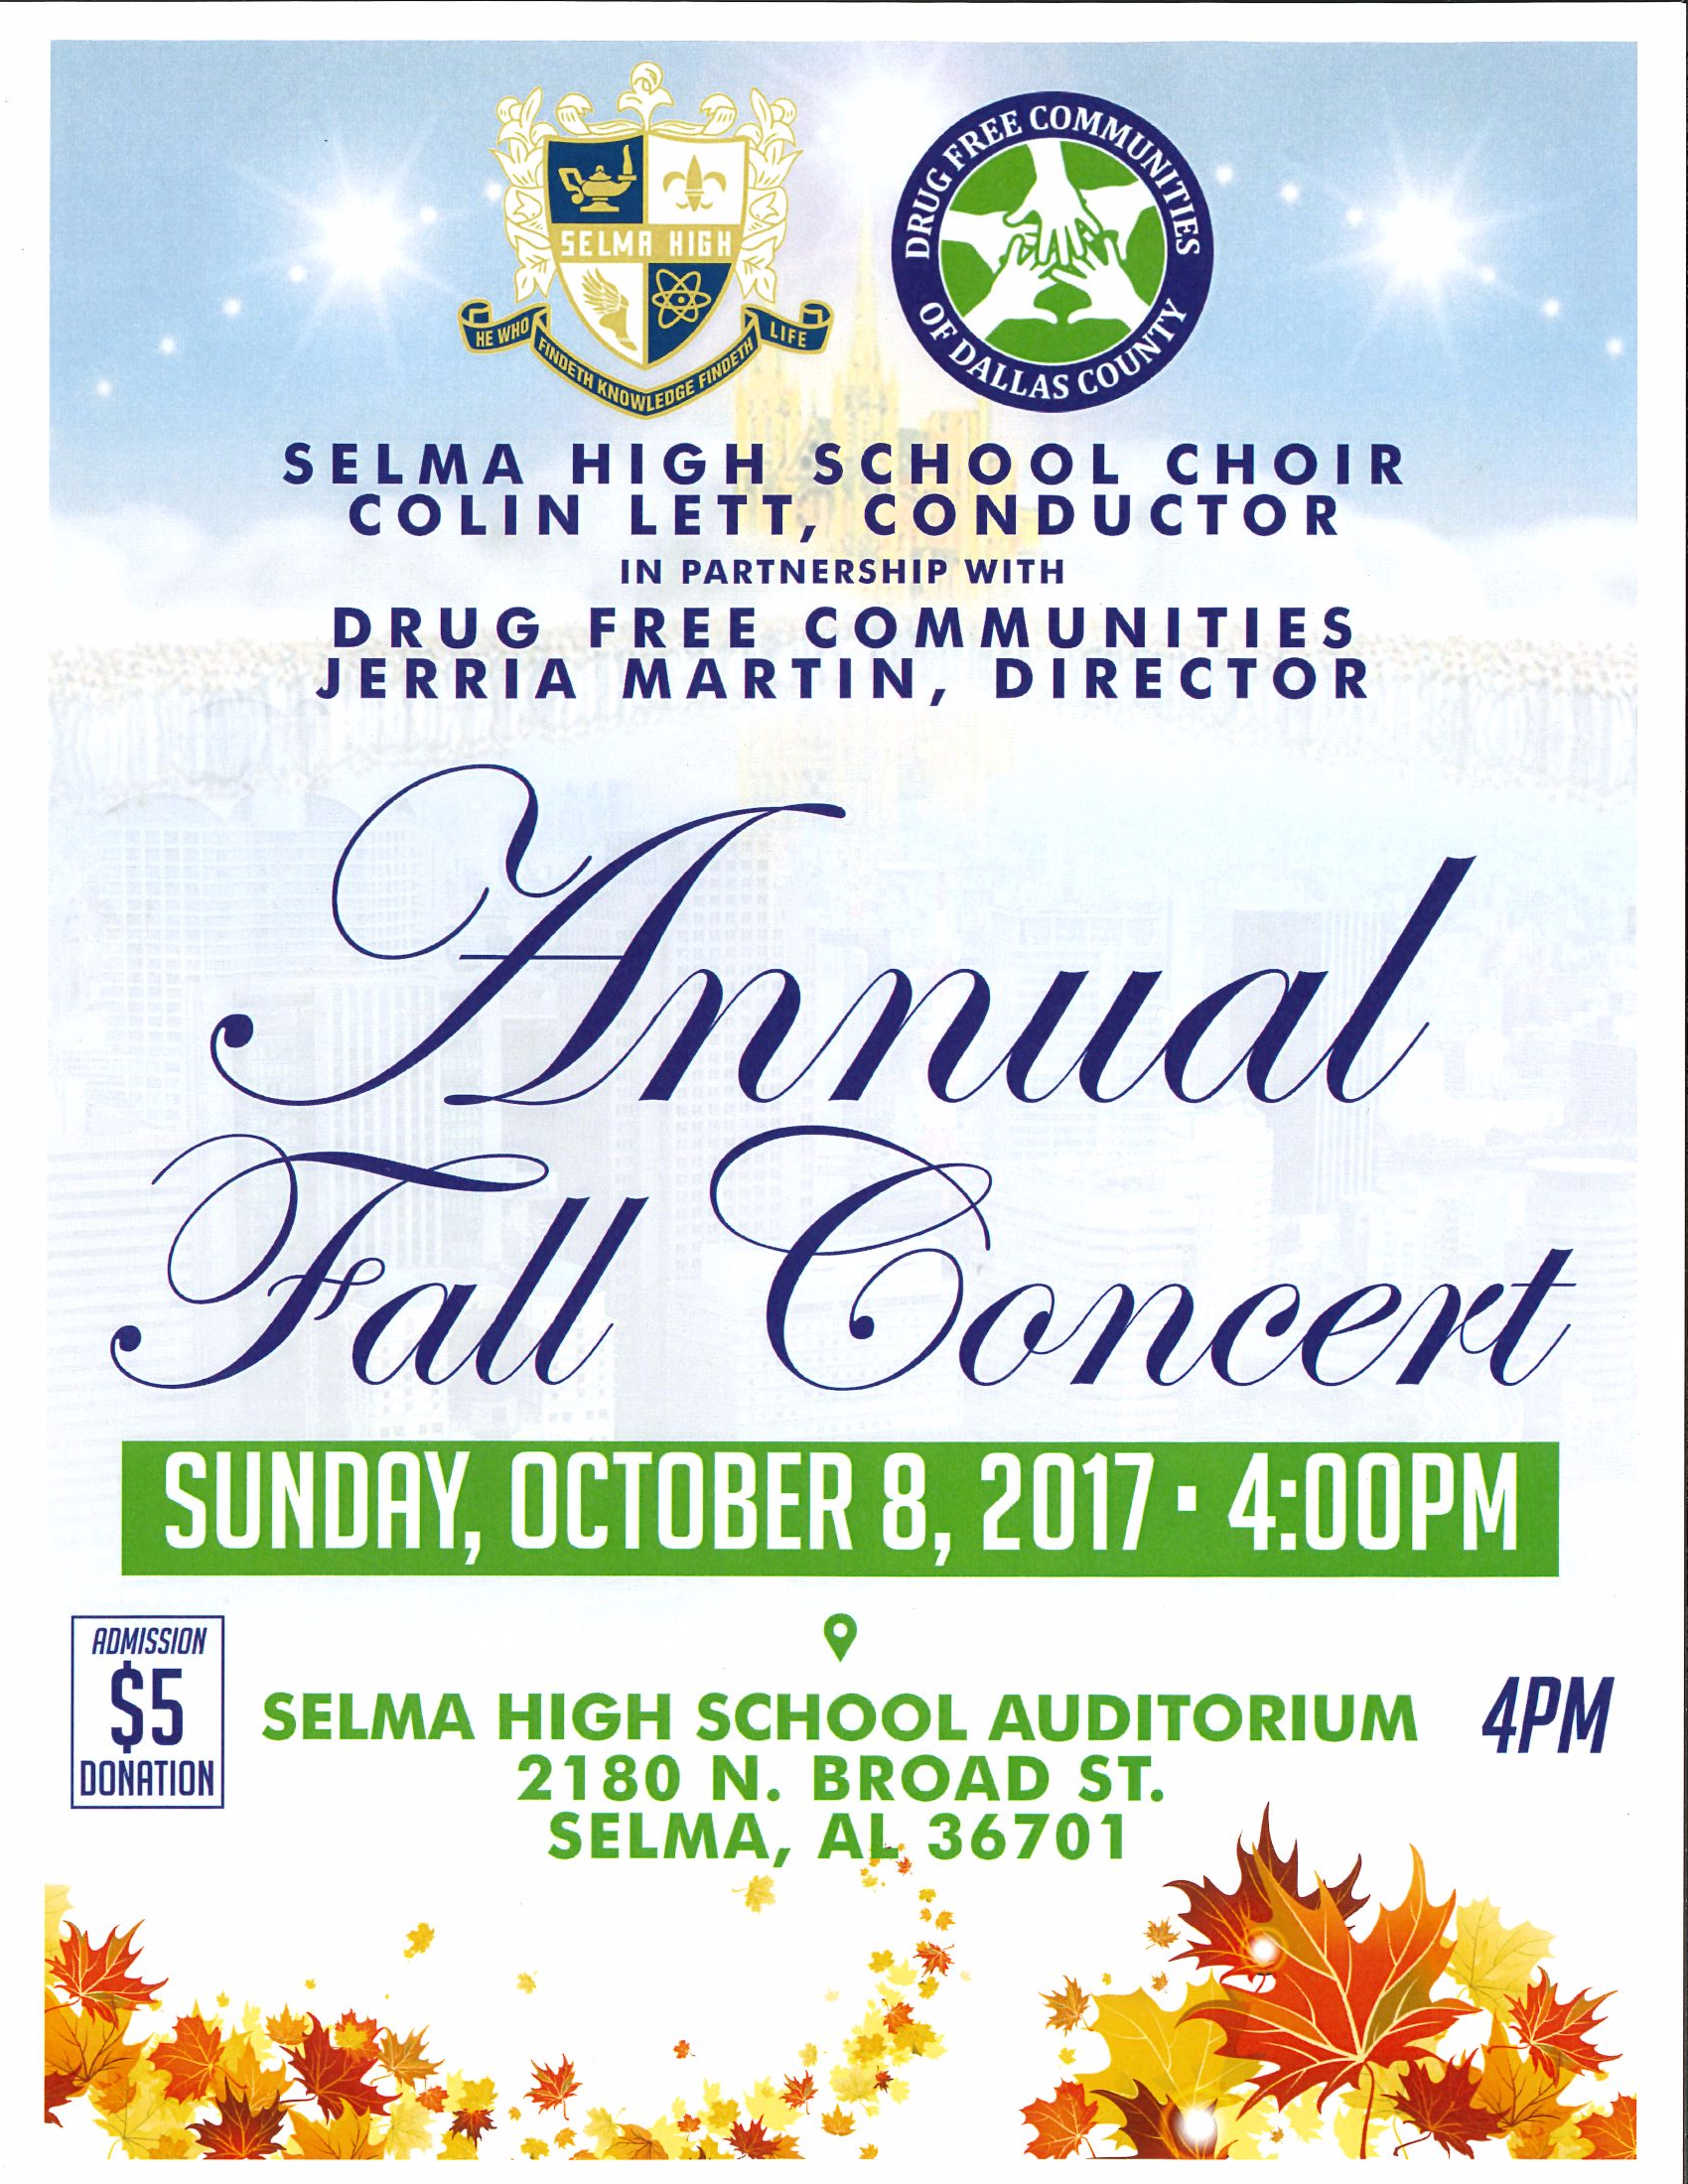 Selma High Choir Annual Fall Concert